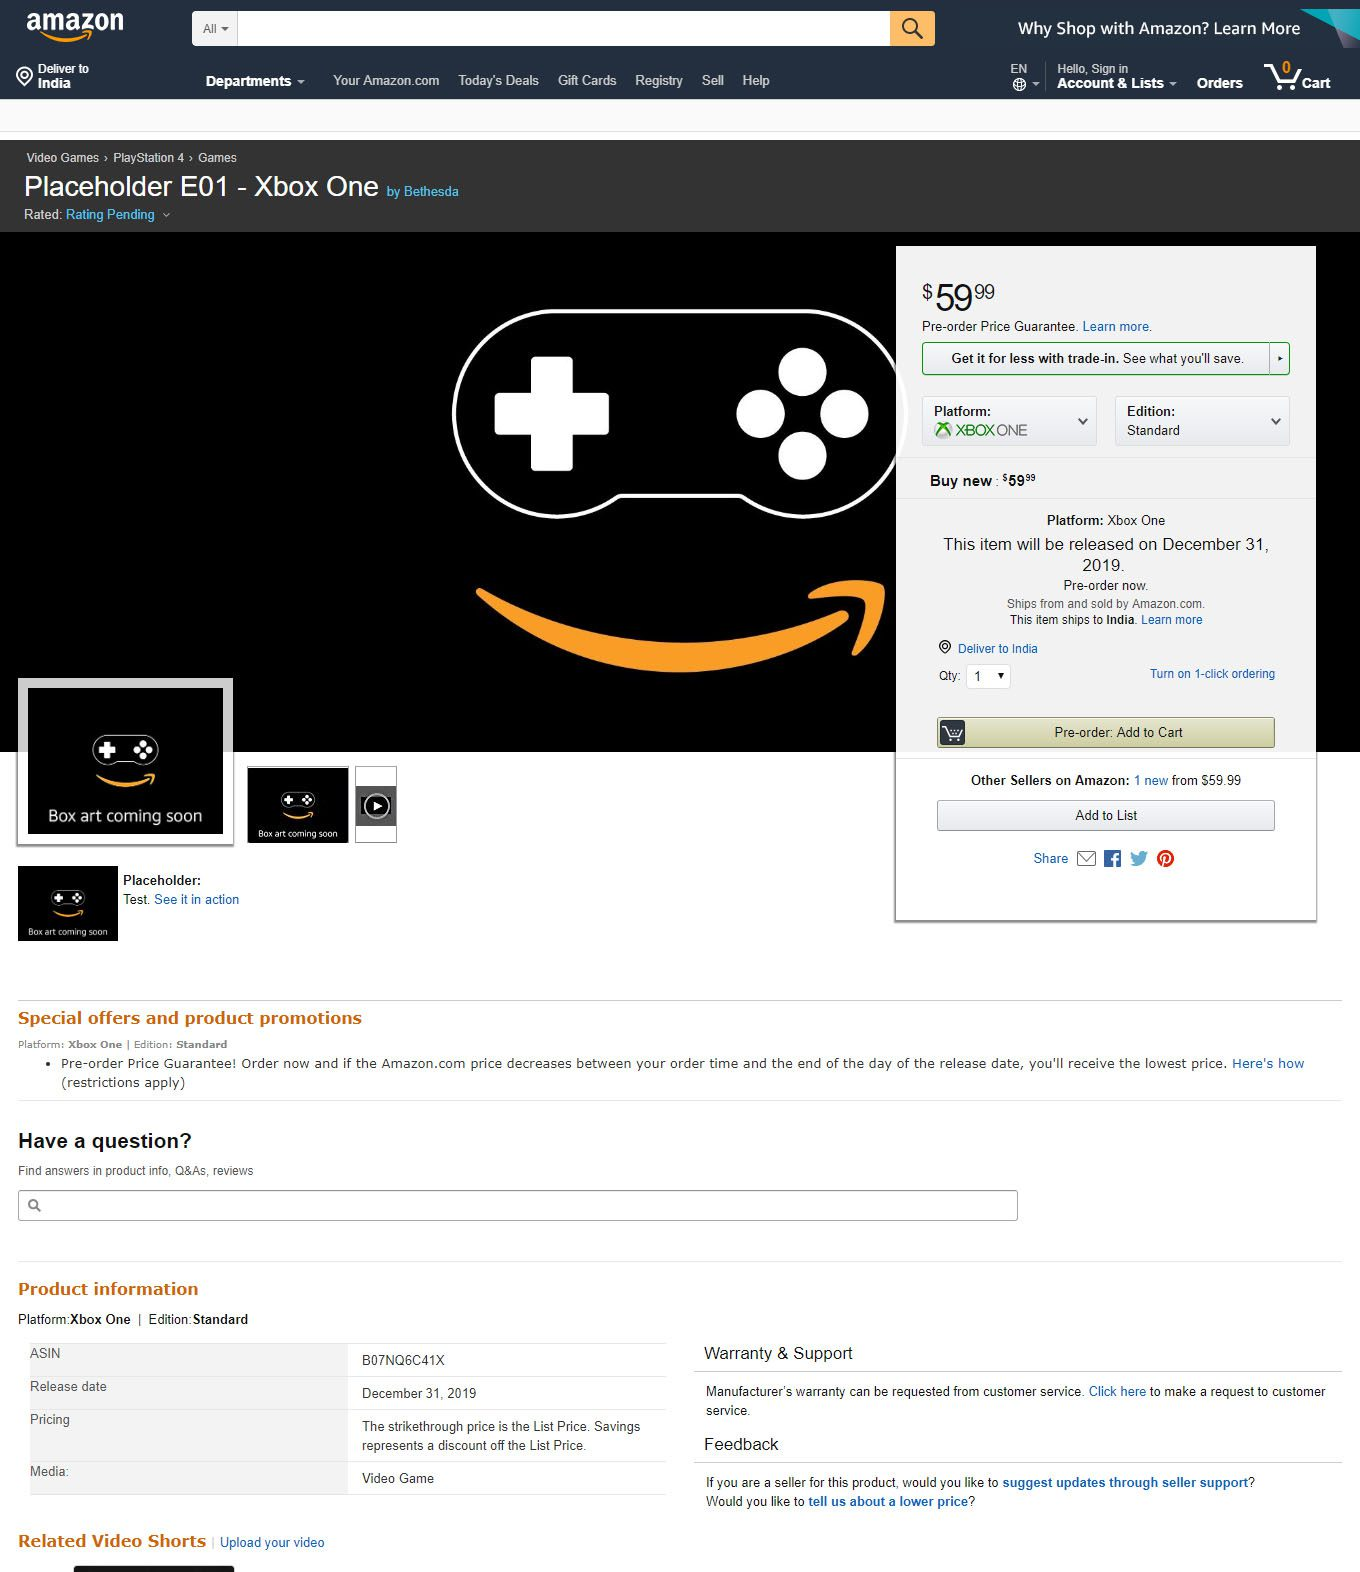 Amazon lists placeholder Bethesda Softworks title for PS4, Xbox One, and PC